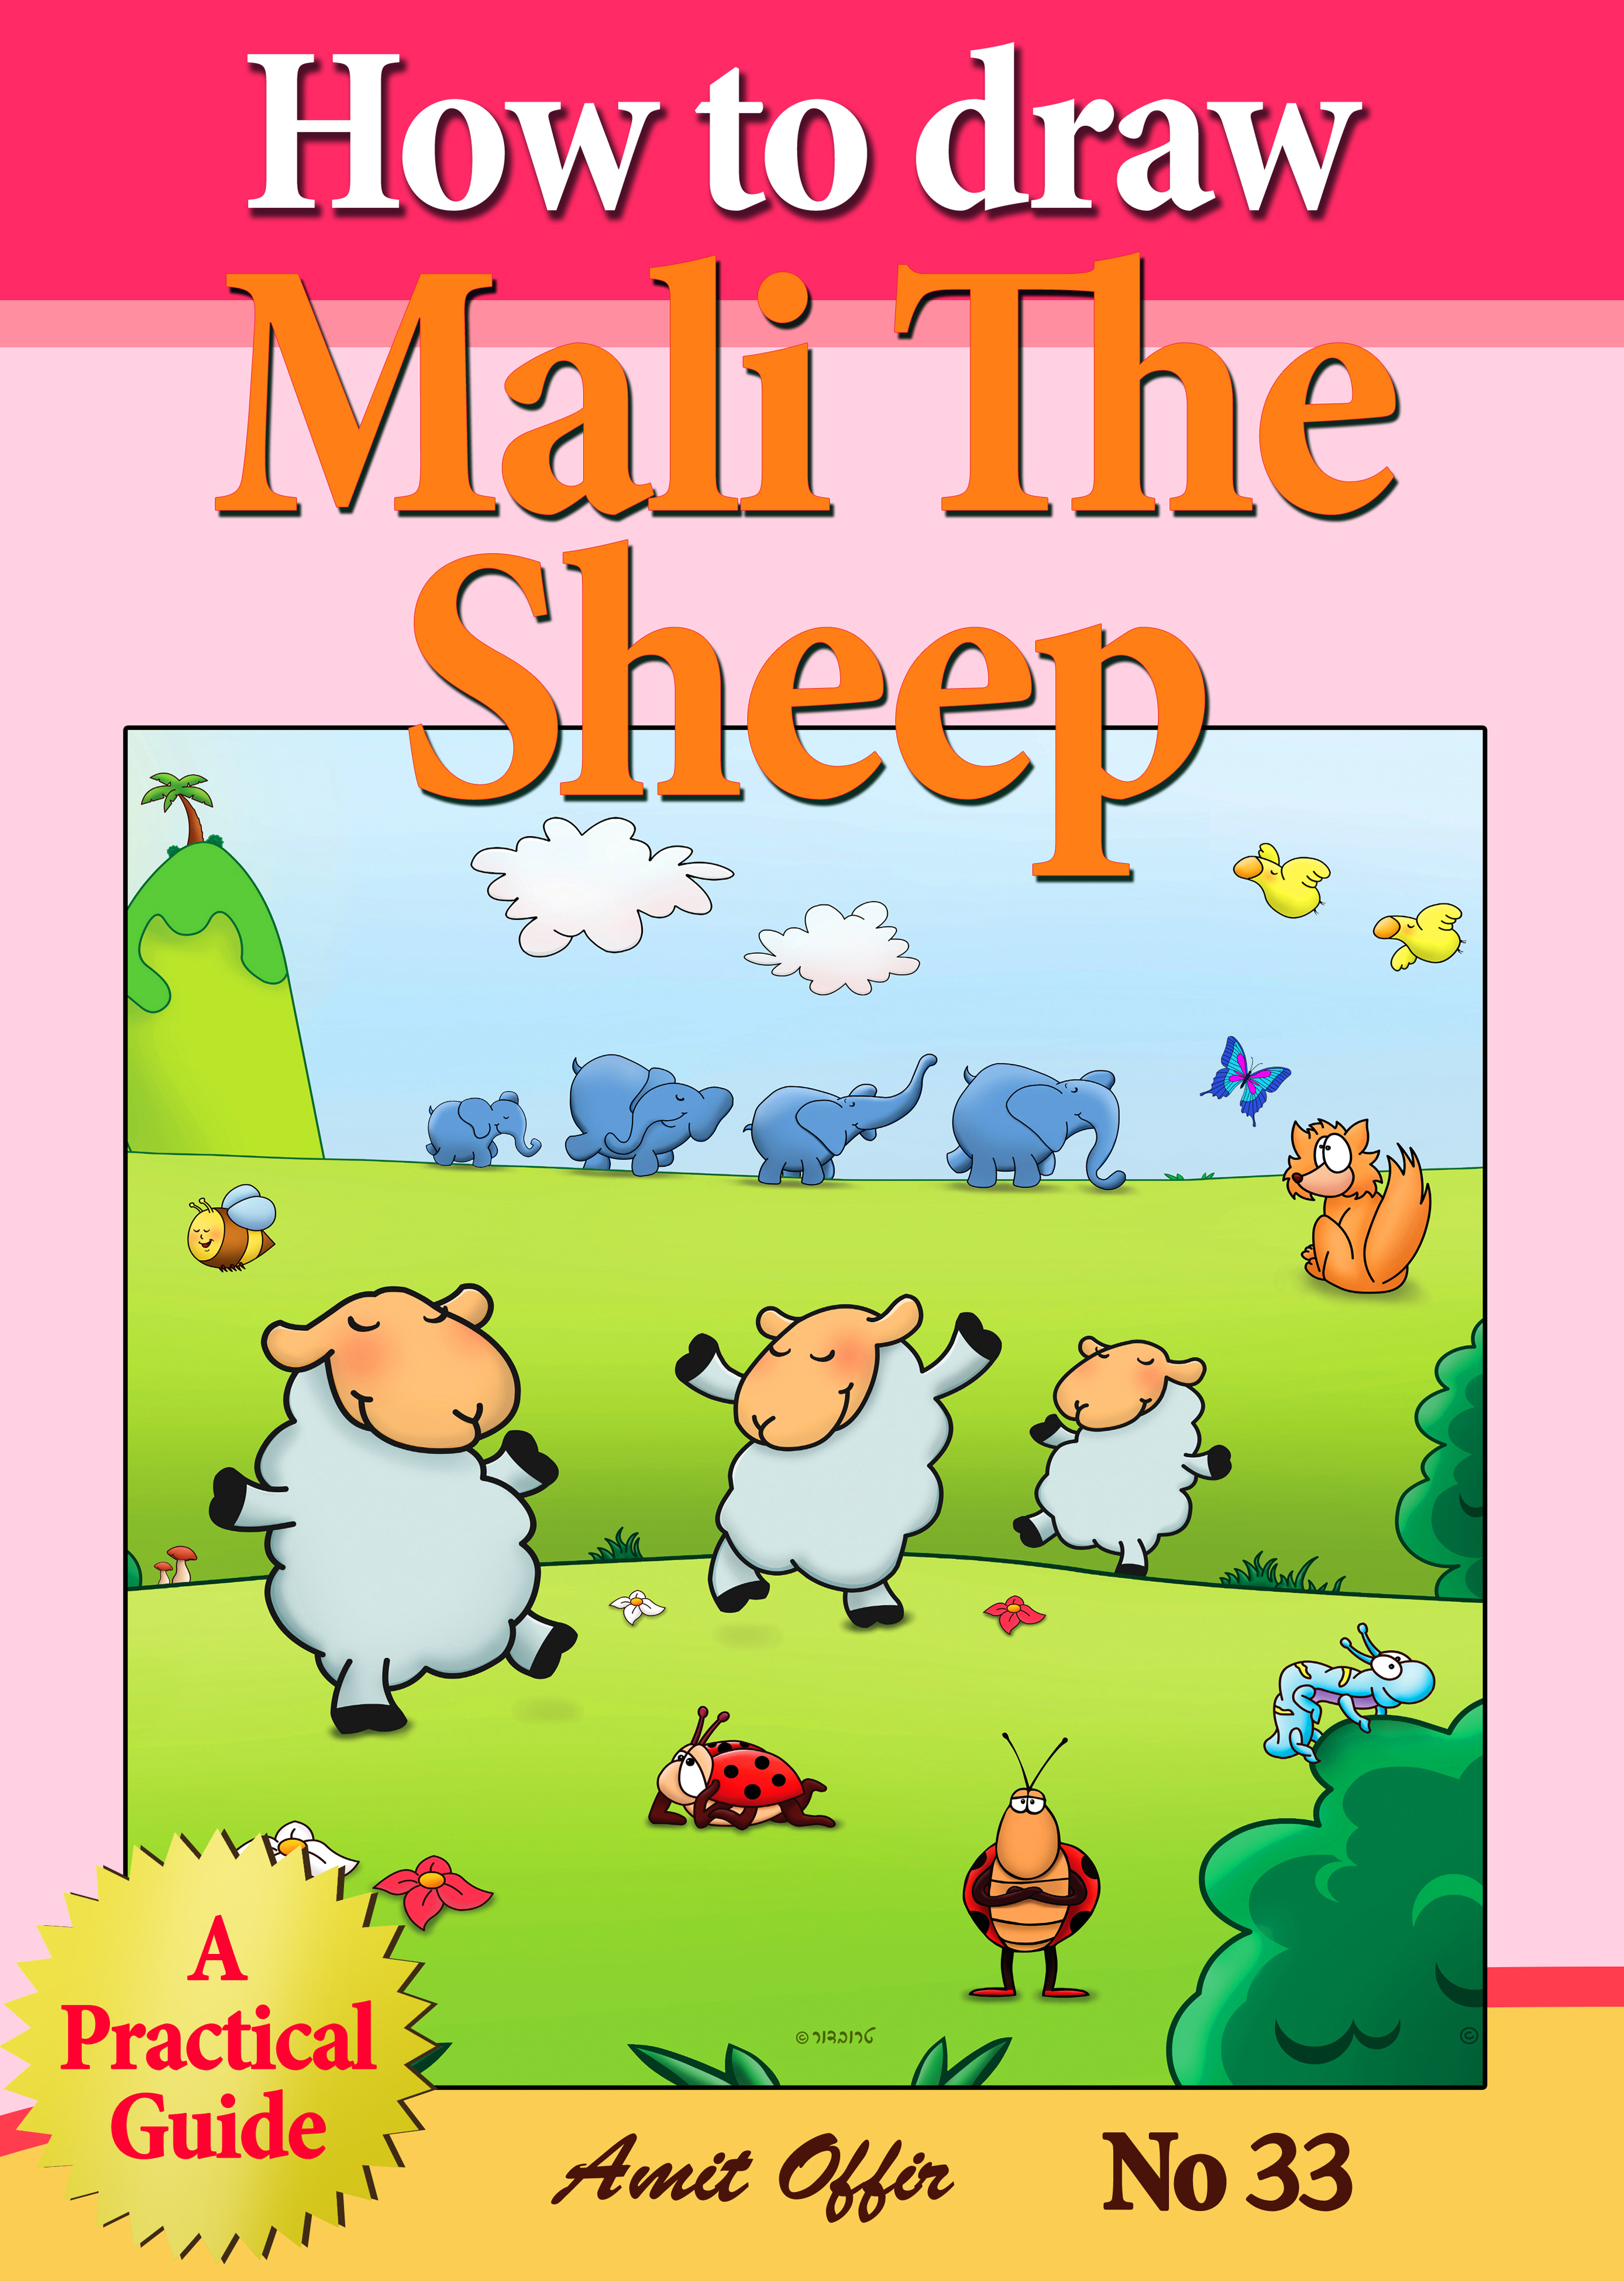 How to Draw Mali the Sheep